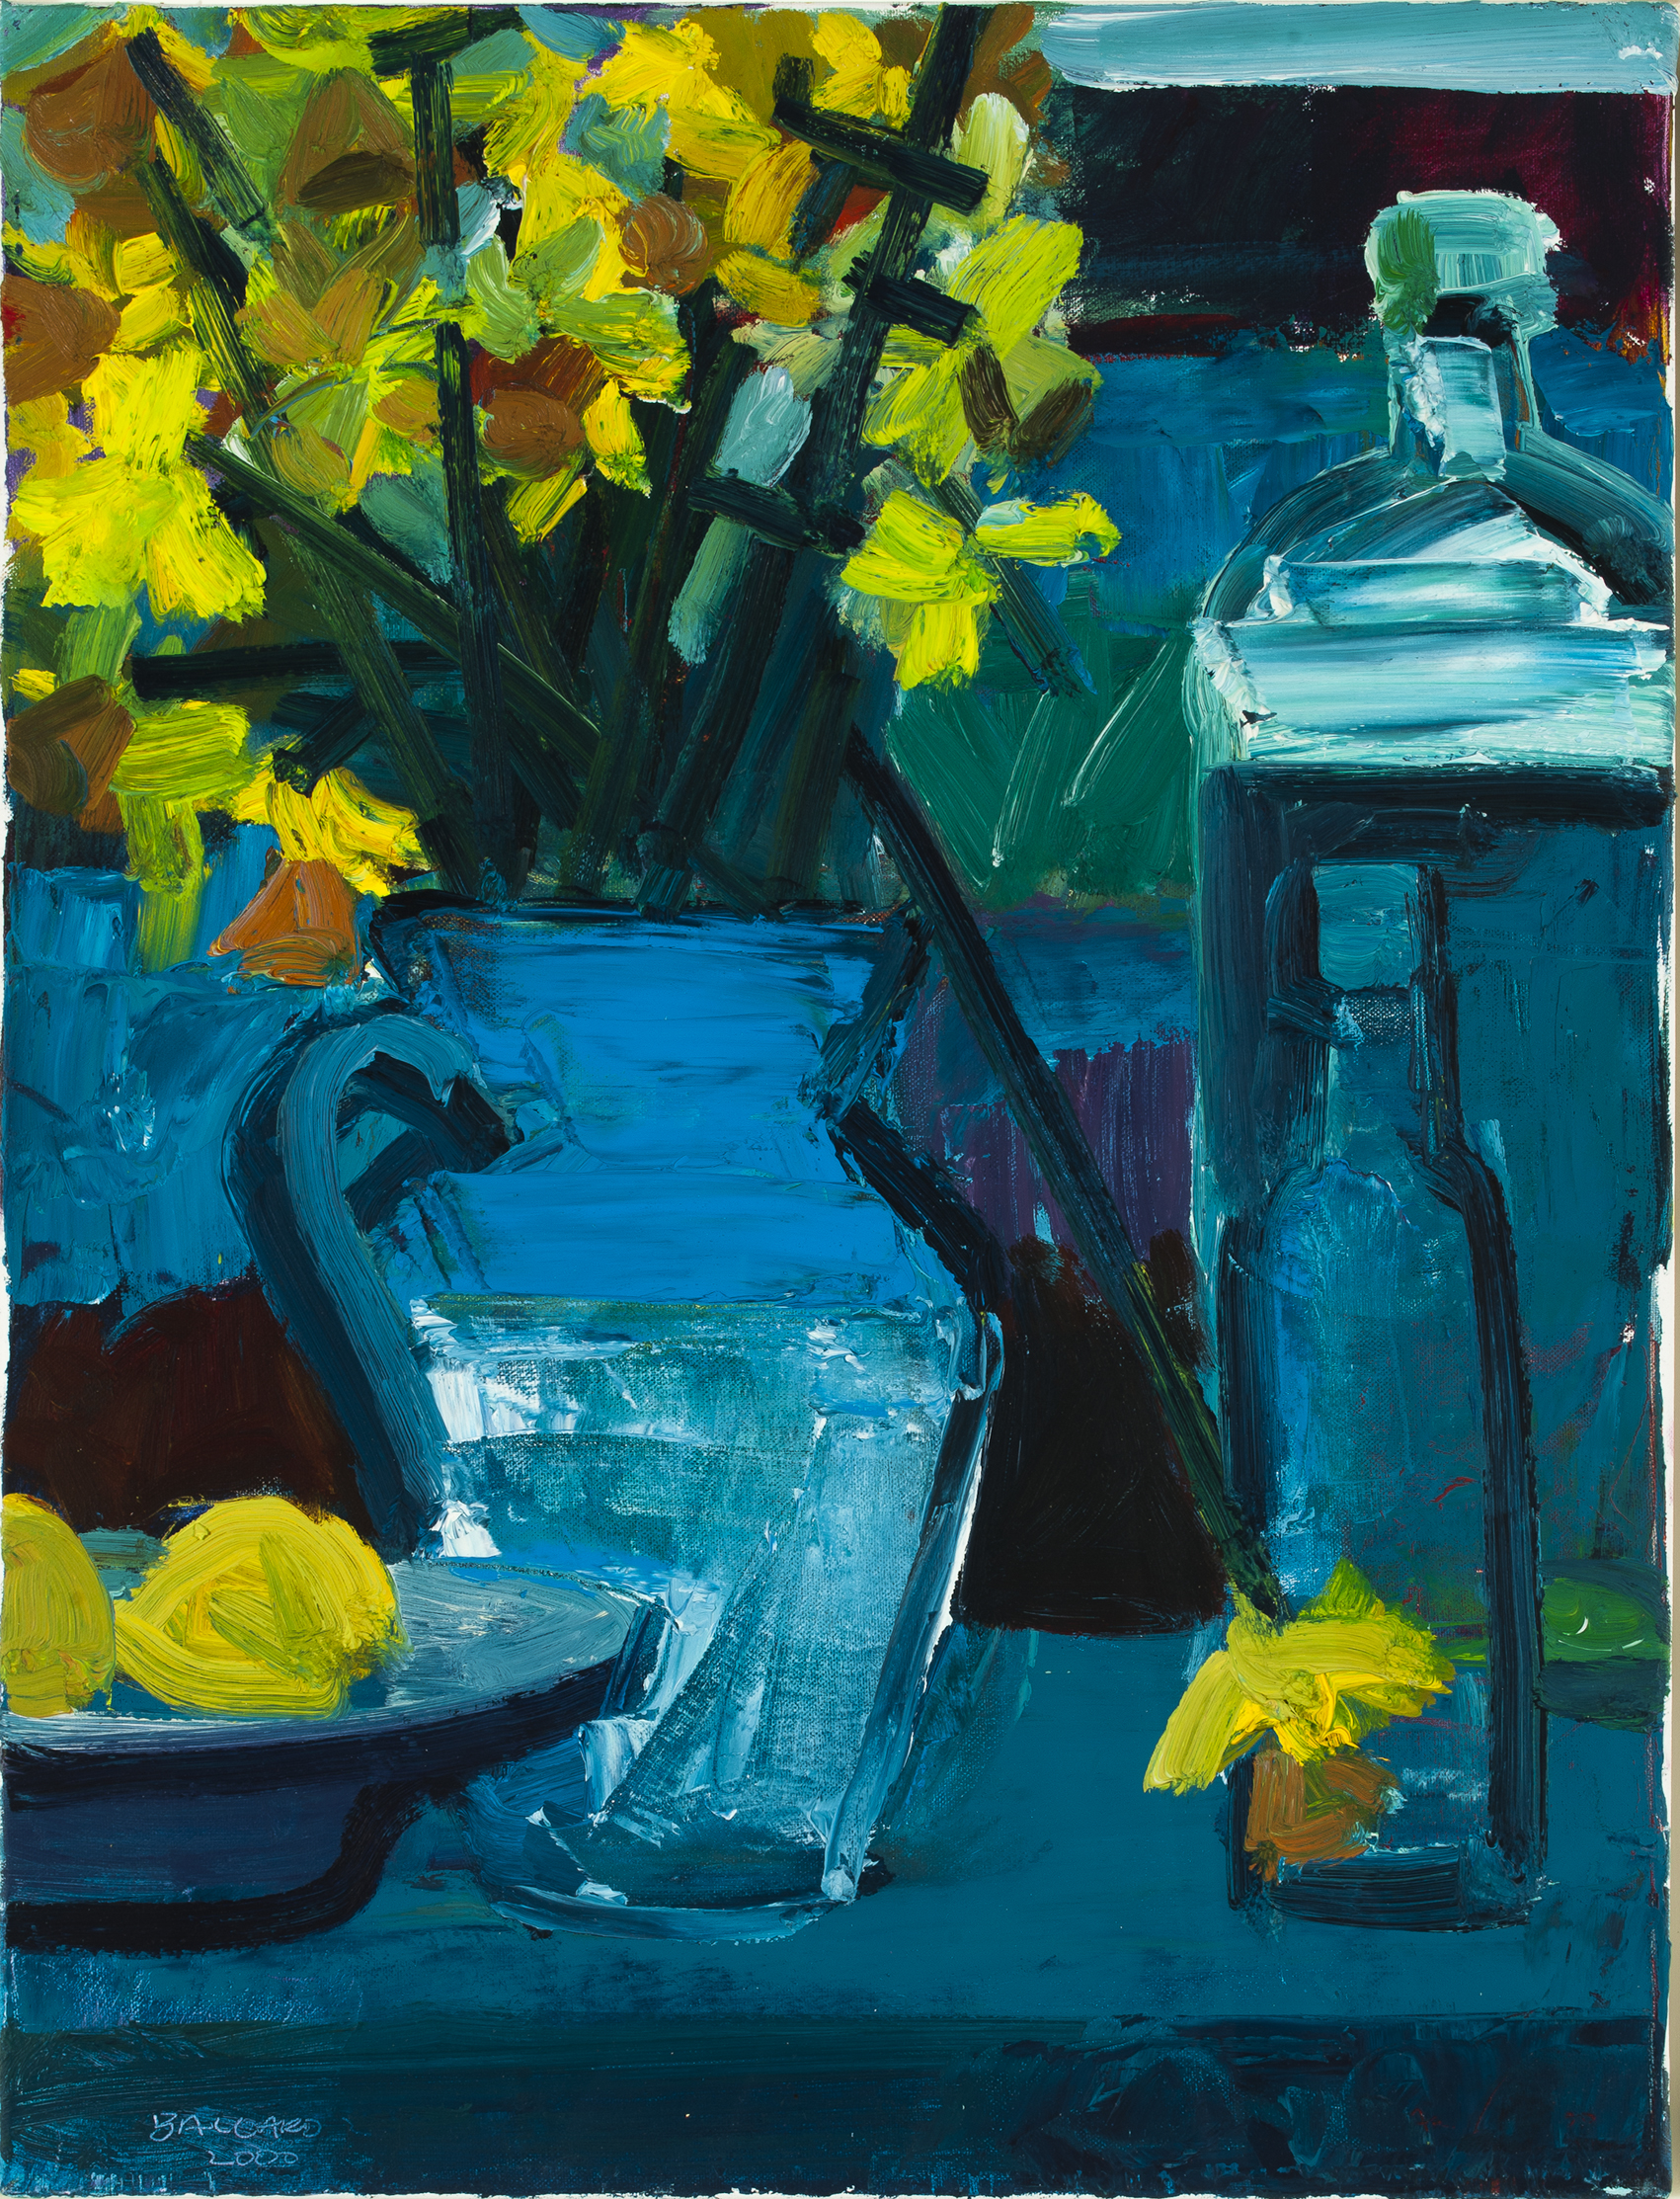 two bottles and daffodilsbrian ballard - art collection